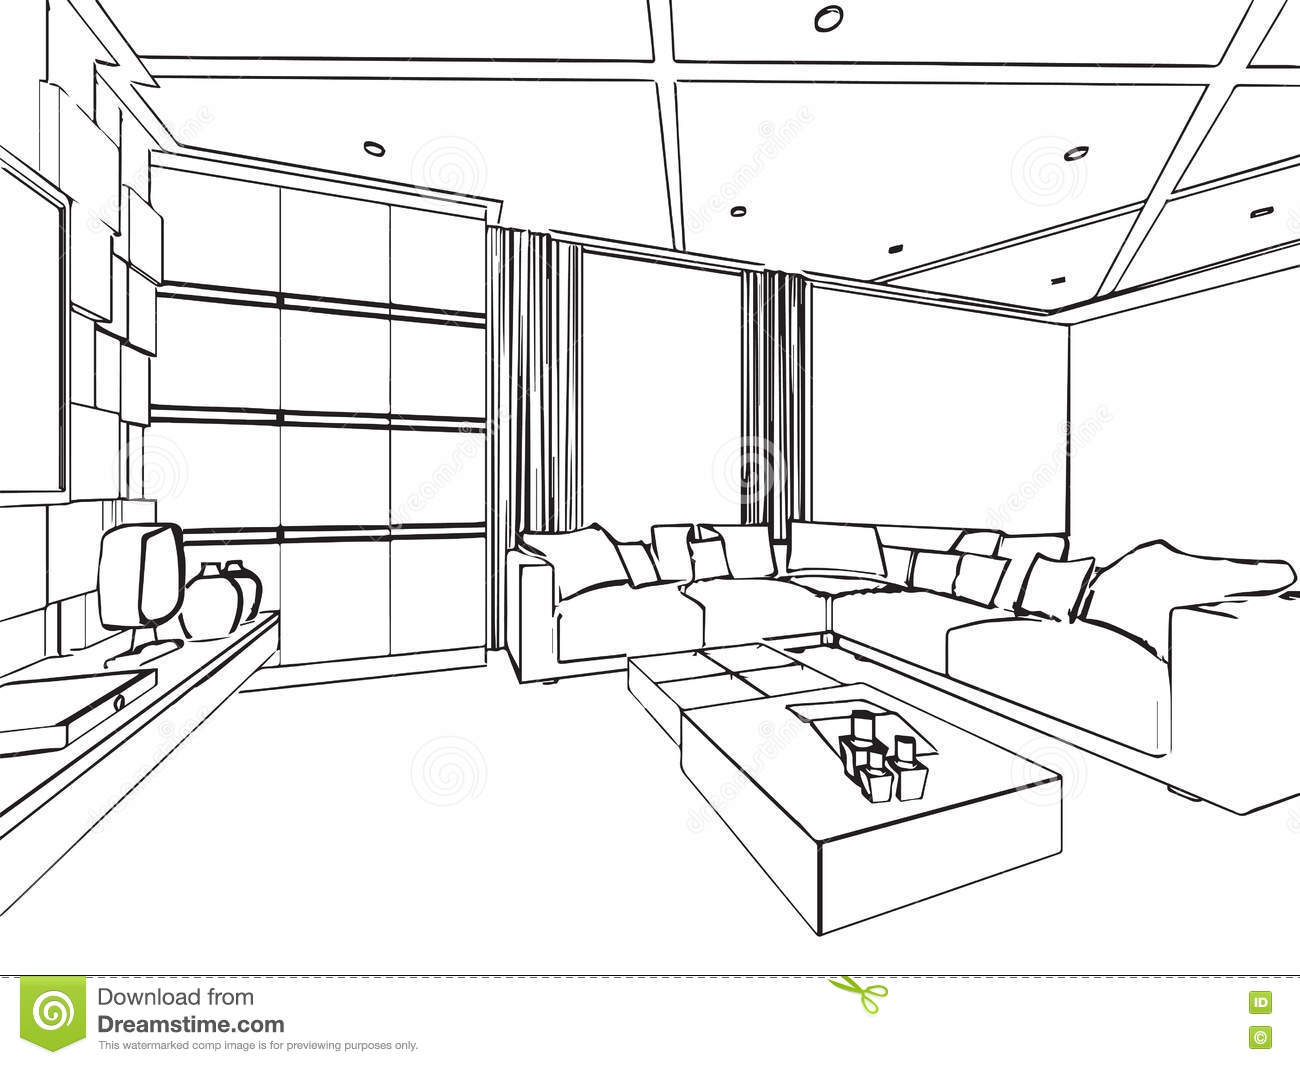 outline sketch drawing interior perspective of house stock vector illustration of architecture. Black Bedroom Furniture Sets. Home Design Ideas